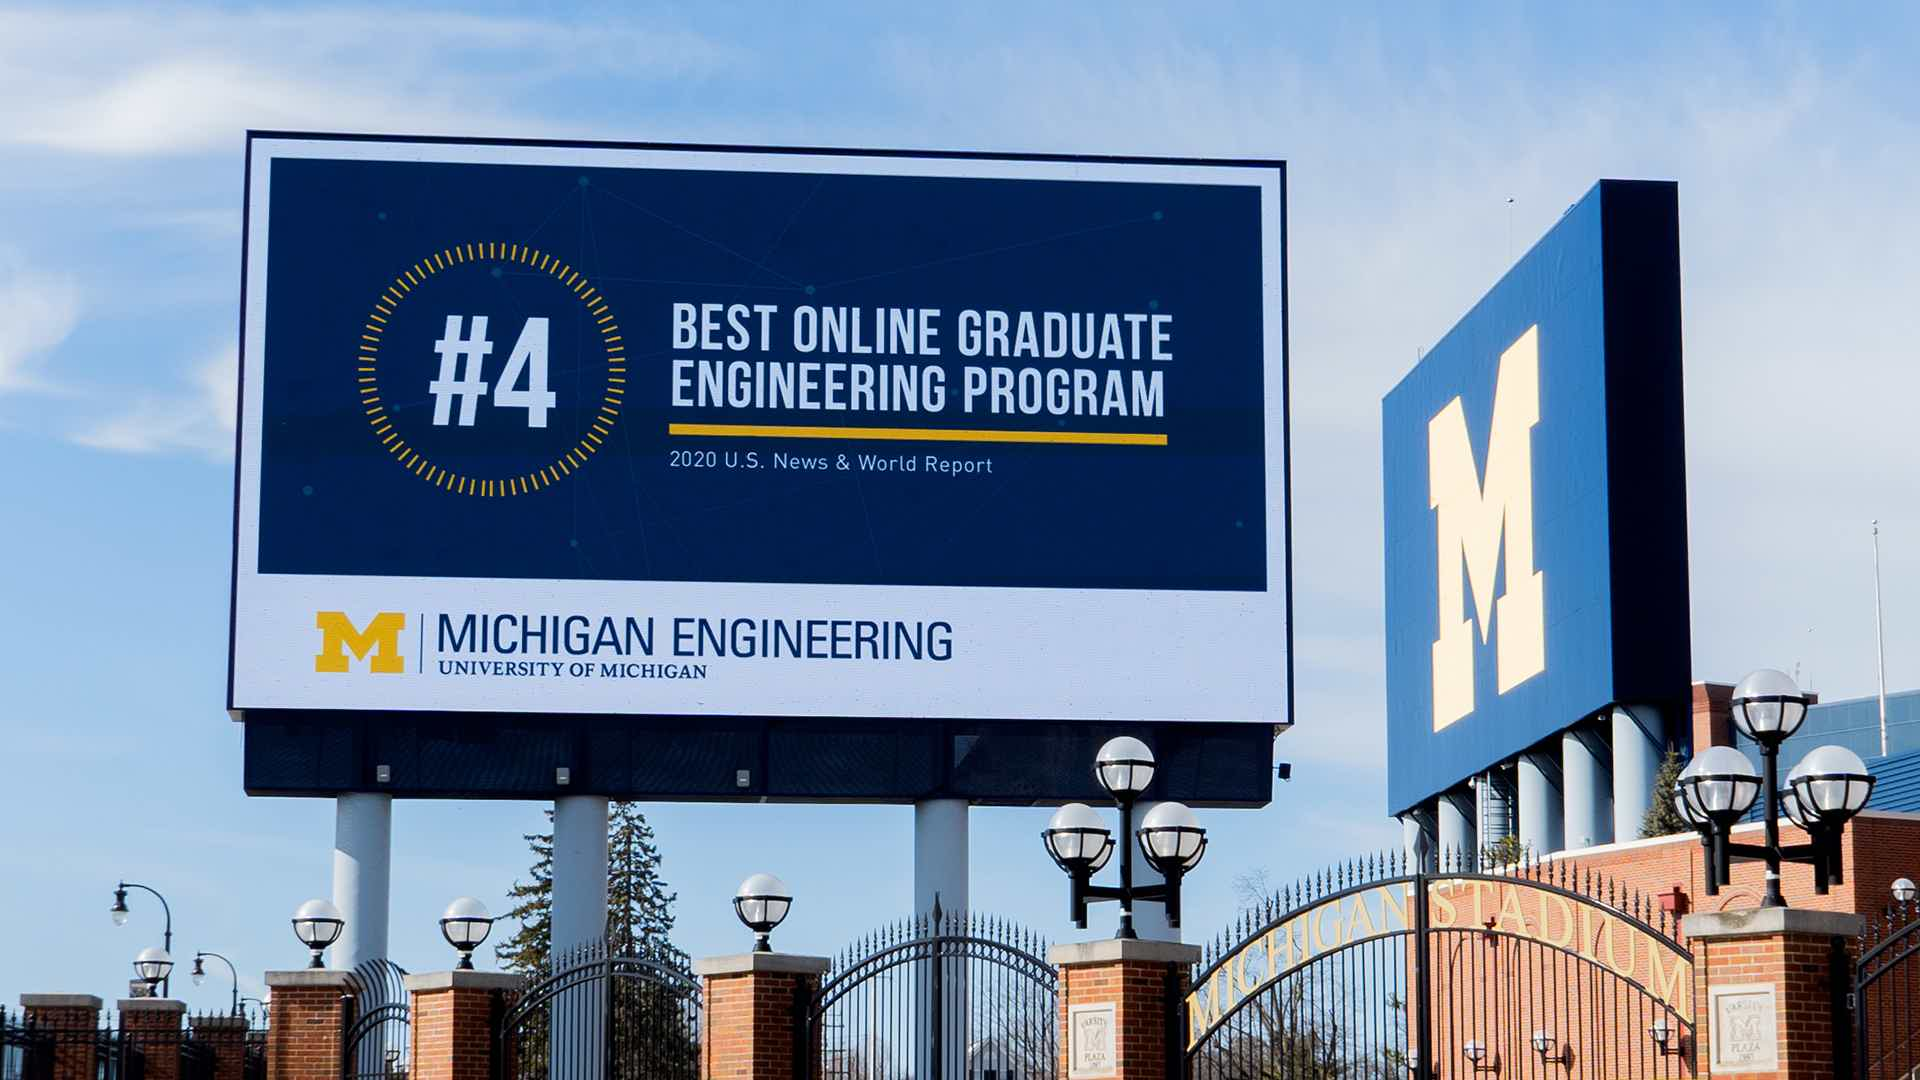 University of Michigan Engineering Ranked #4 Best Online Graduate Engineering Program